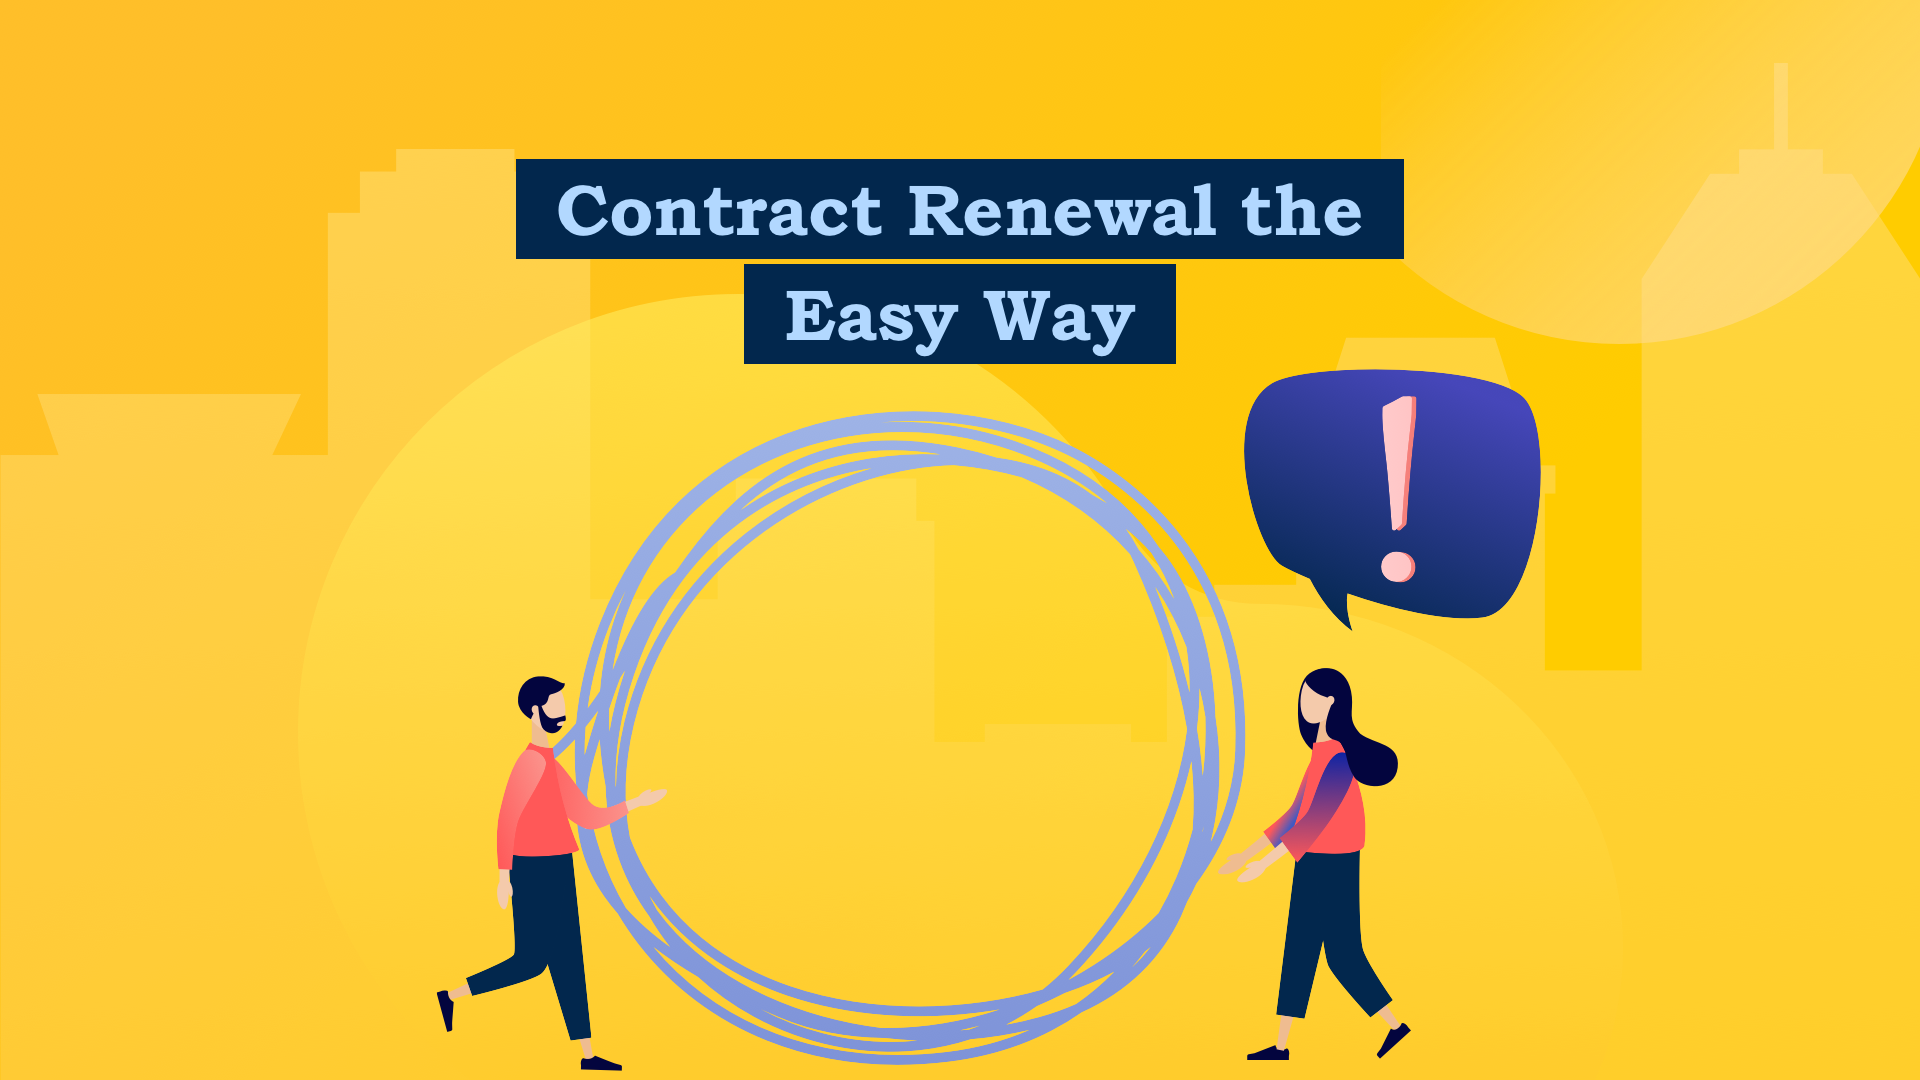 Contract renewal the easy way